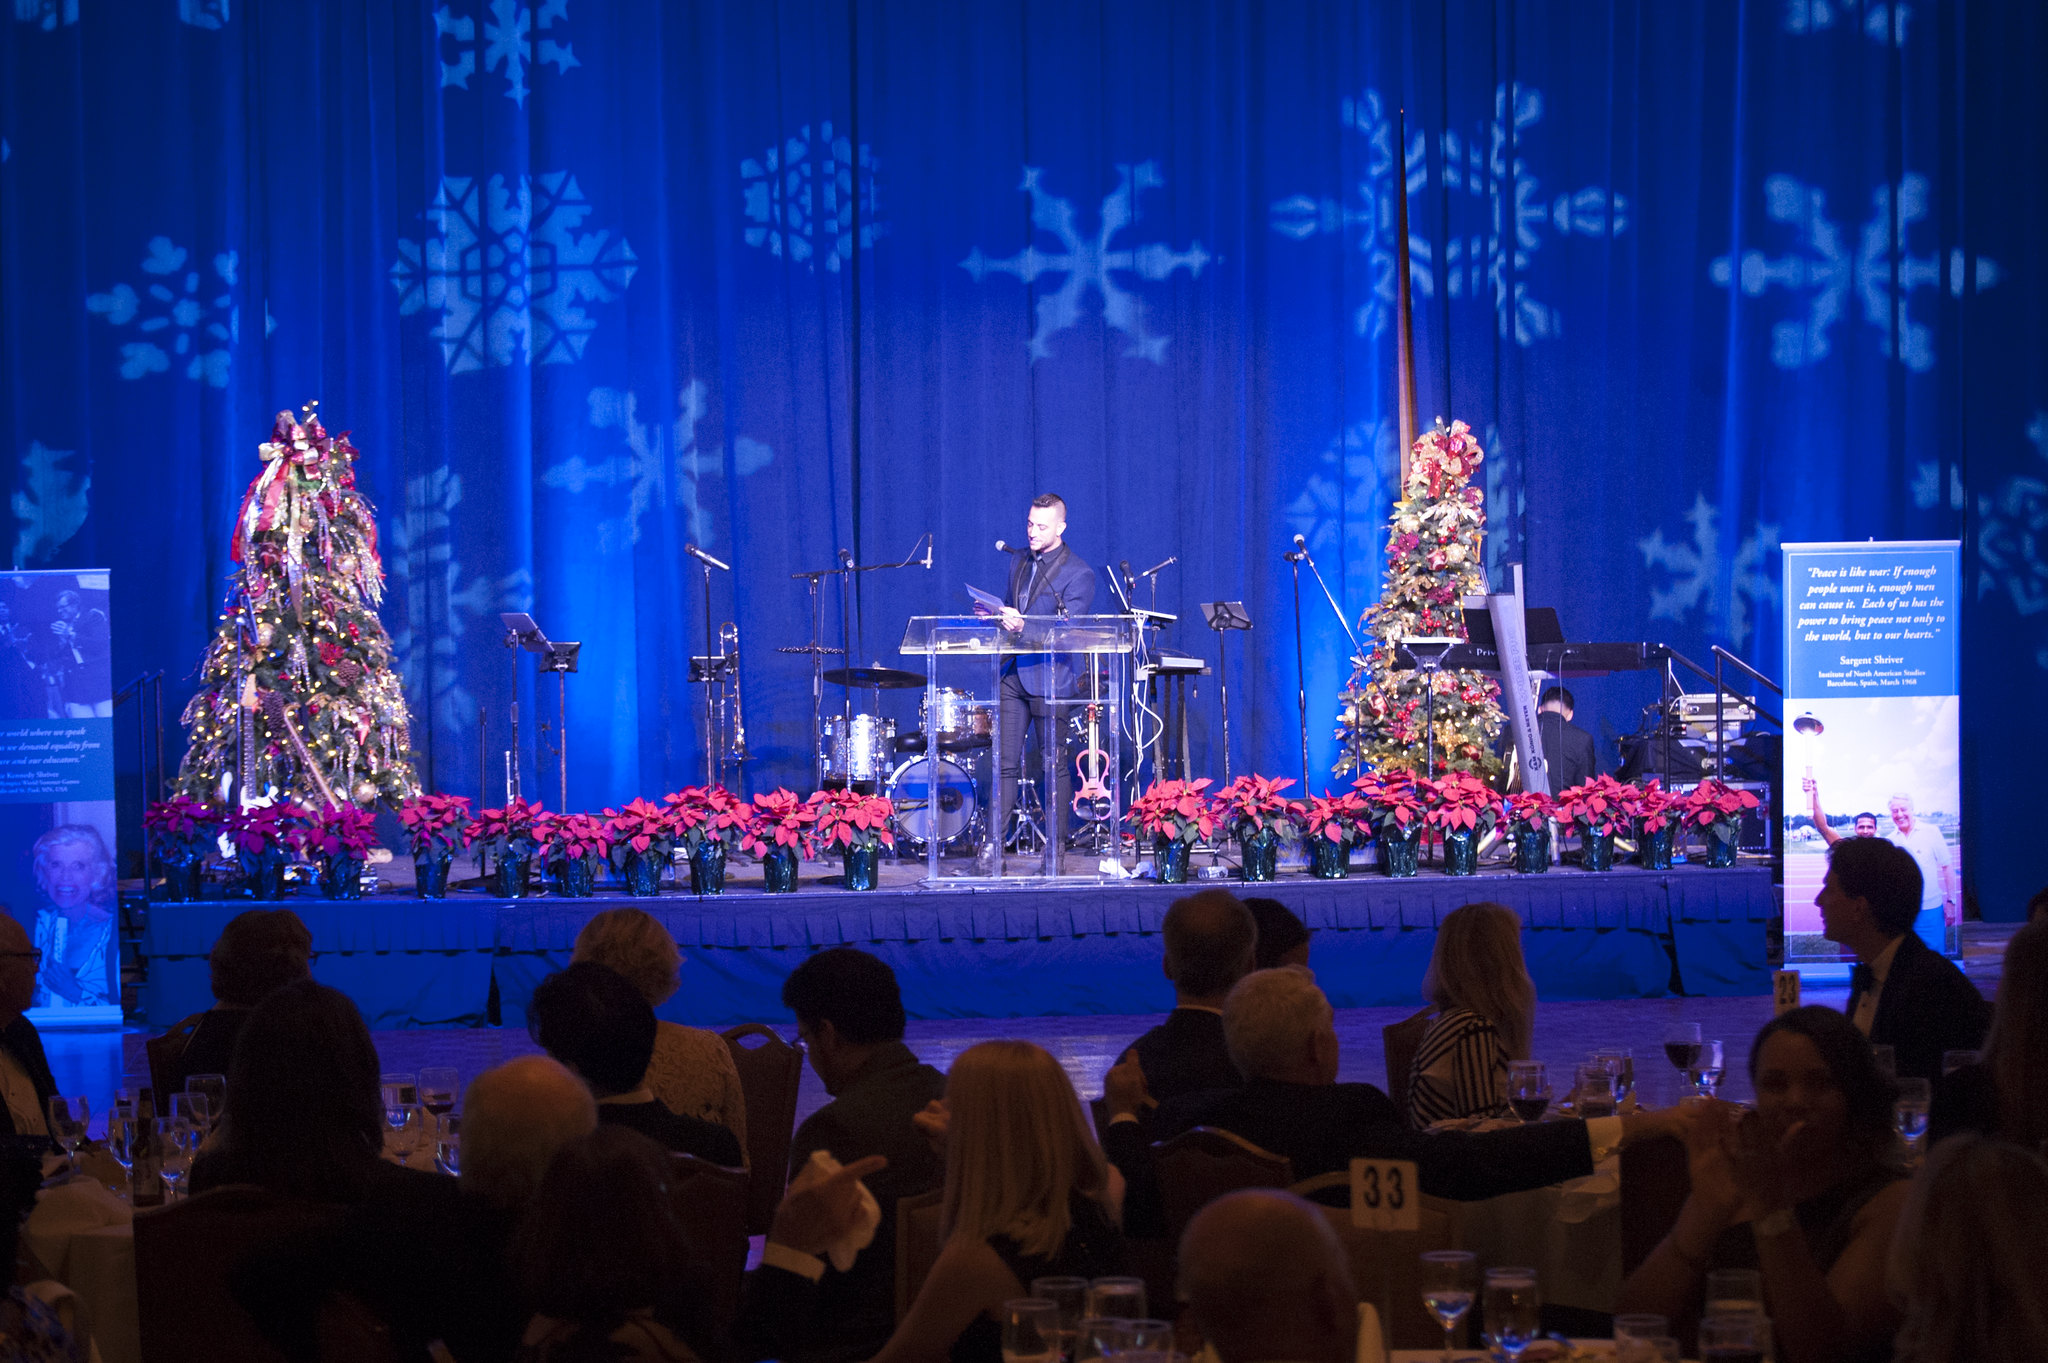 Christmas Events Dc 2019.2019 Night Of Trees